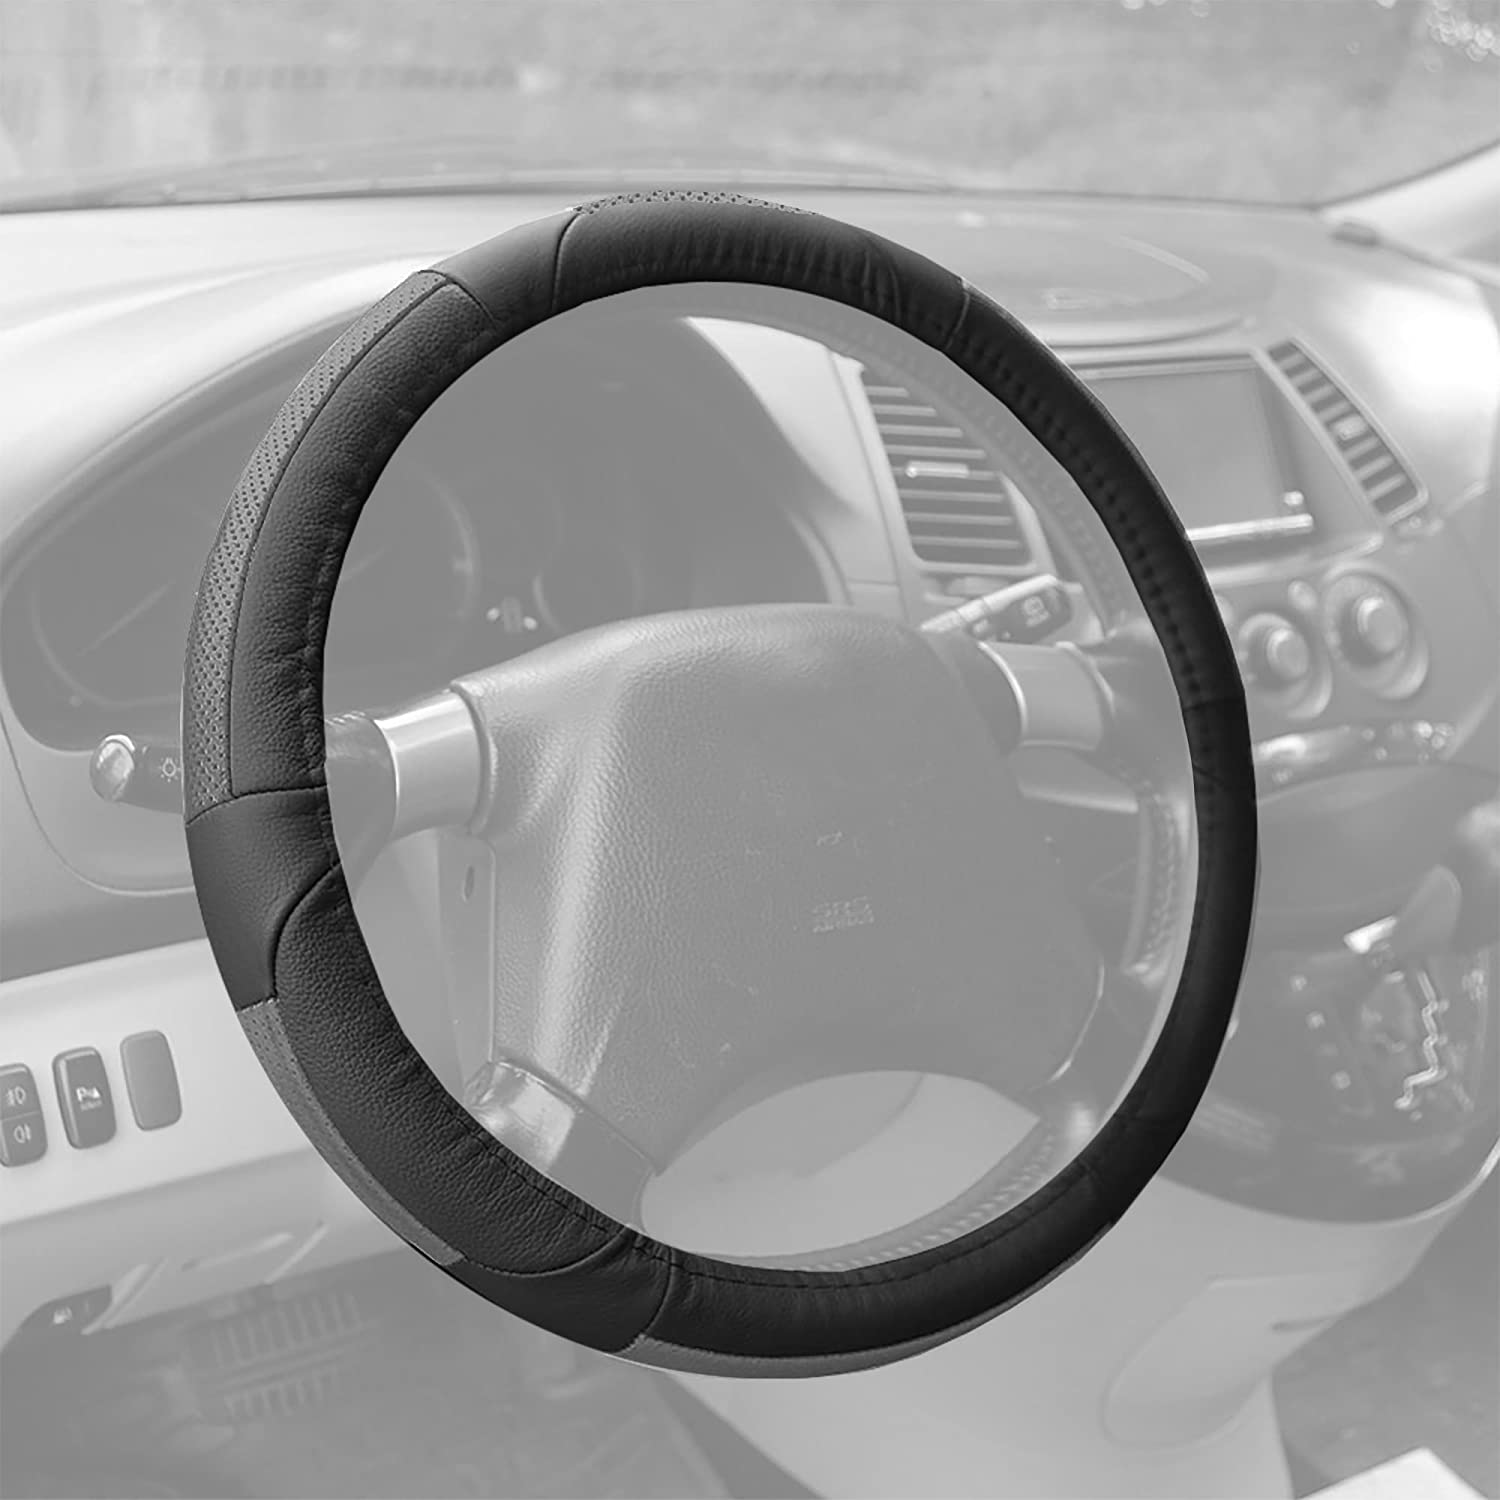 ON SALE: FH GROUP FH-FH2002 Premium Genuine Full Grain Leather Steering Wheel Cover Solid Gray FBA_FH2002SOLIDGRAY